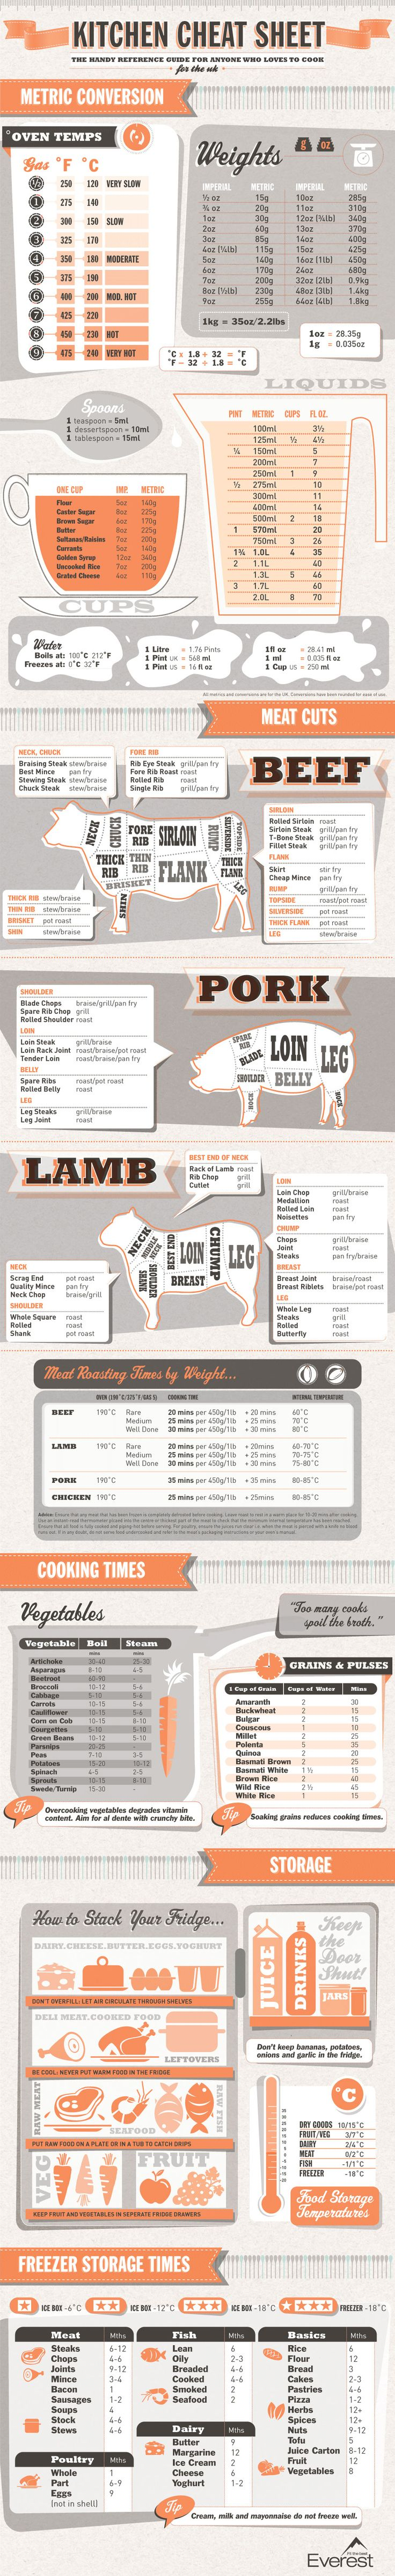 Kitchen Cheat Sheet: Learn how to cook or do it even better! A handy reference guide for cooking lovers just to be on the safe side. Extra food storage tips at the bottom. To find a printer-friendly A4 size version of the cheat sheet please click the publisher link on the left.